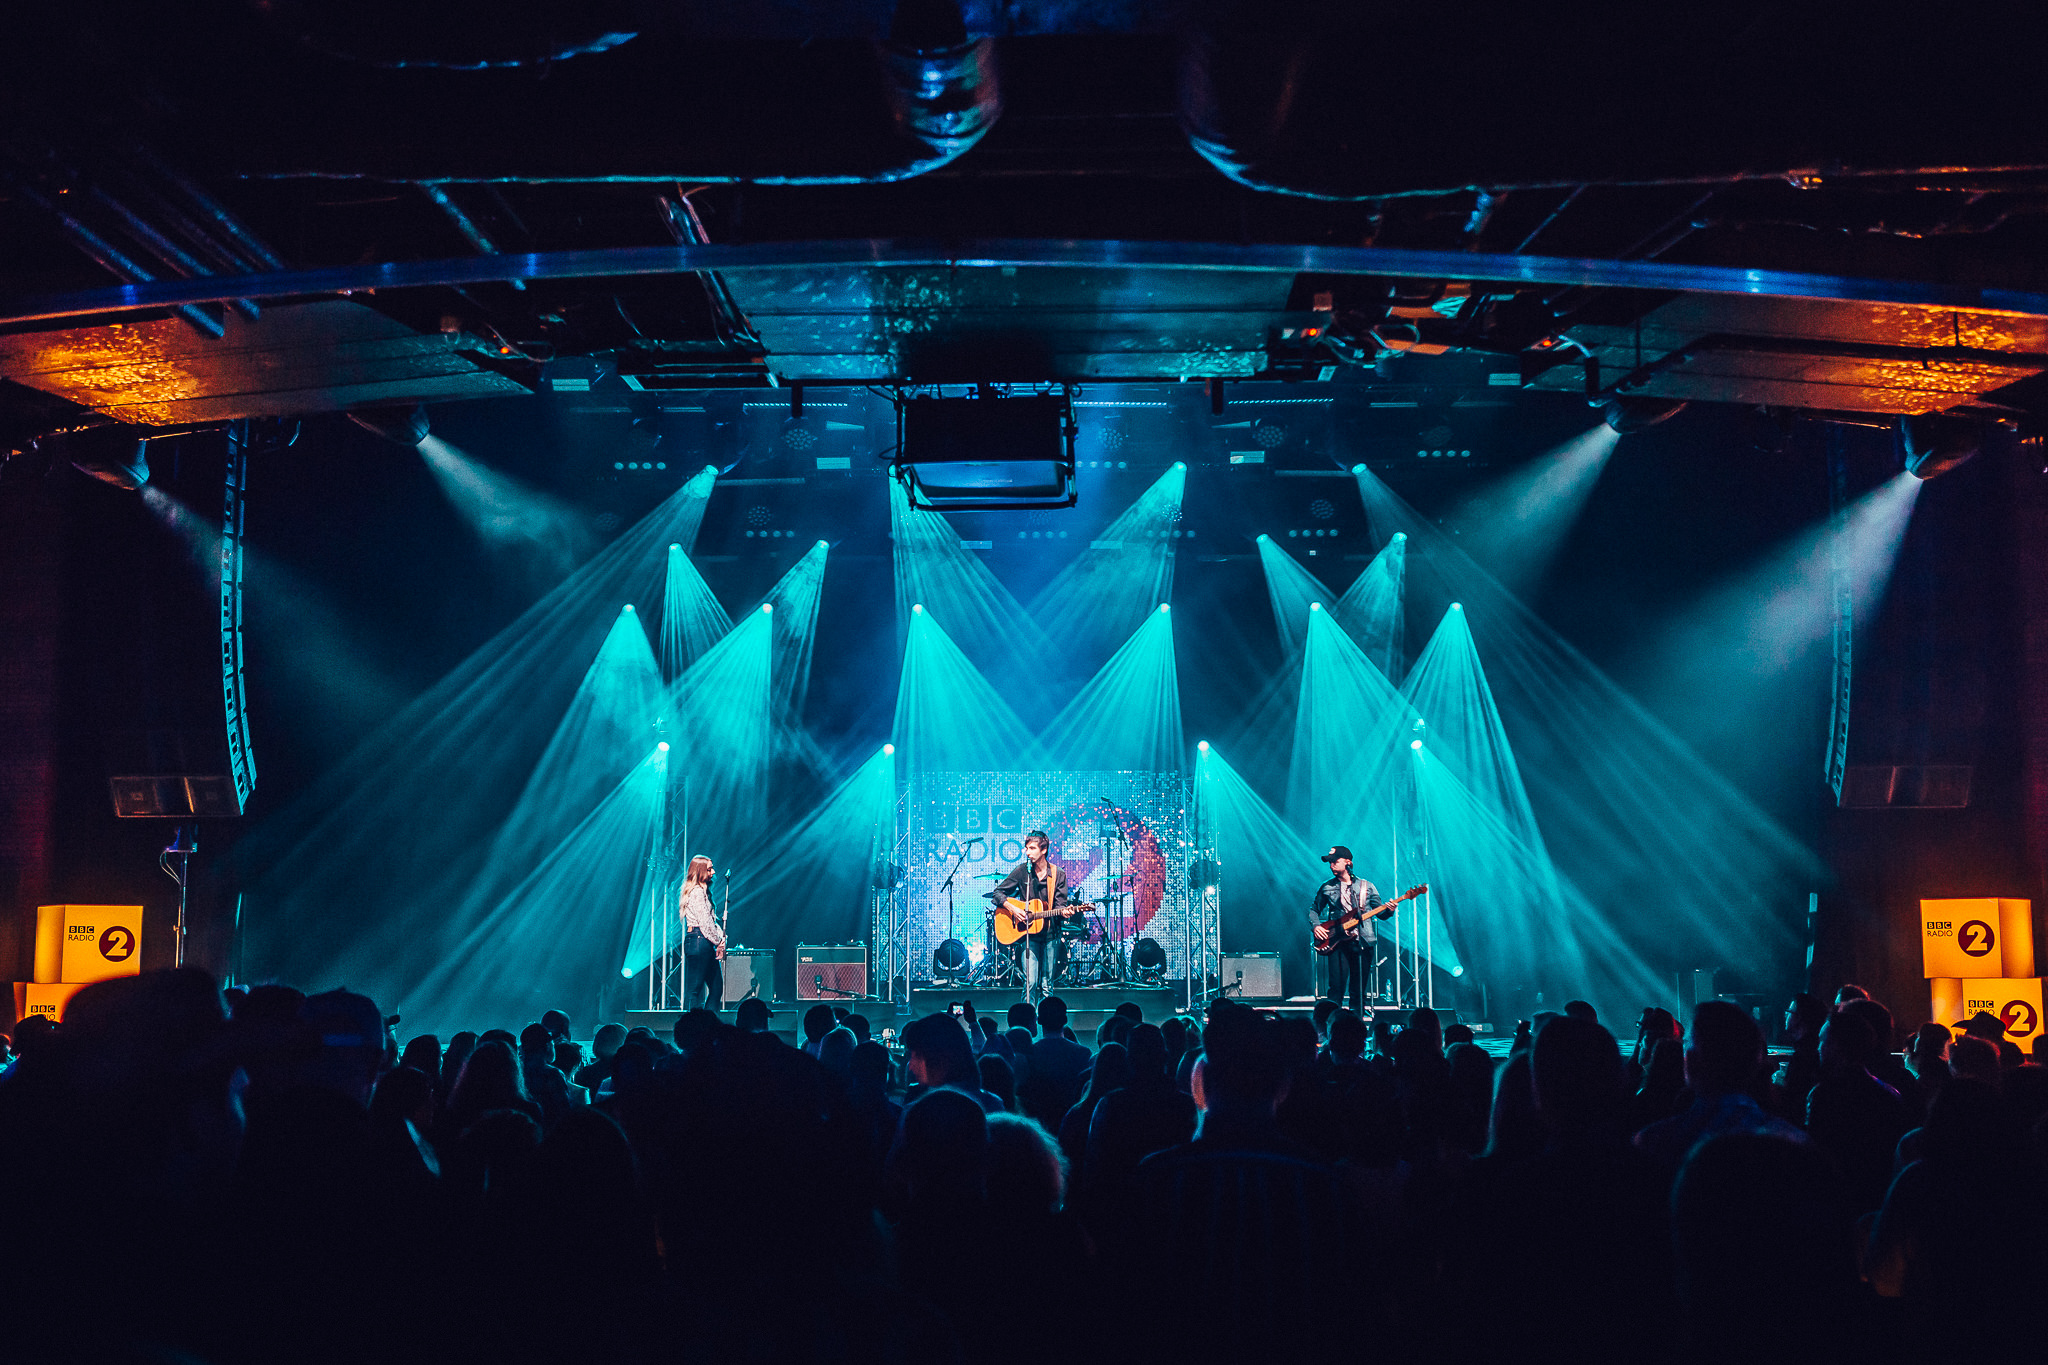 Indigo At The O2 Stages Stunning Performances With New